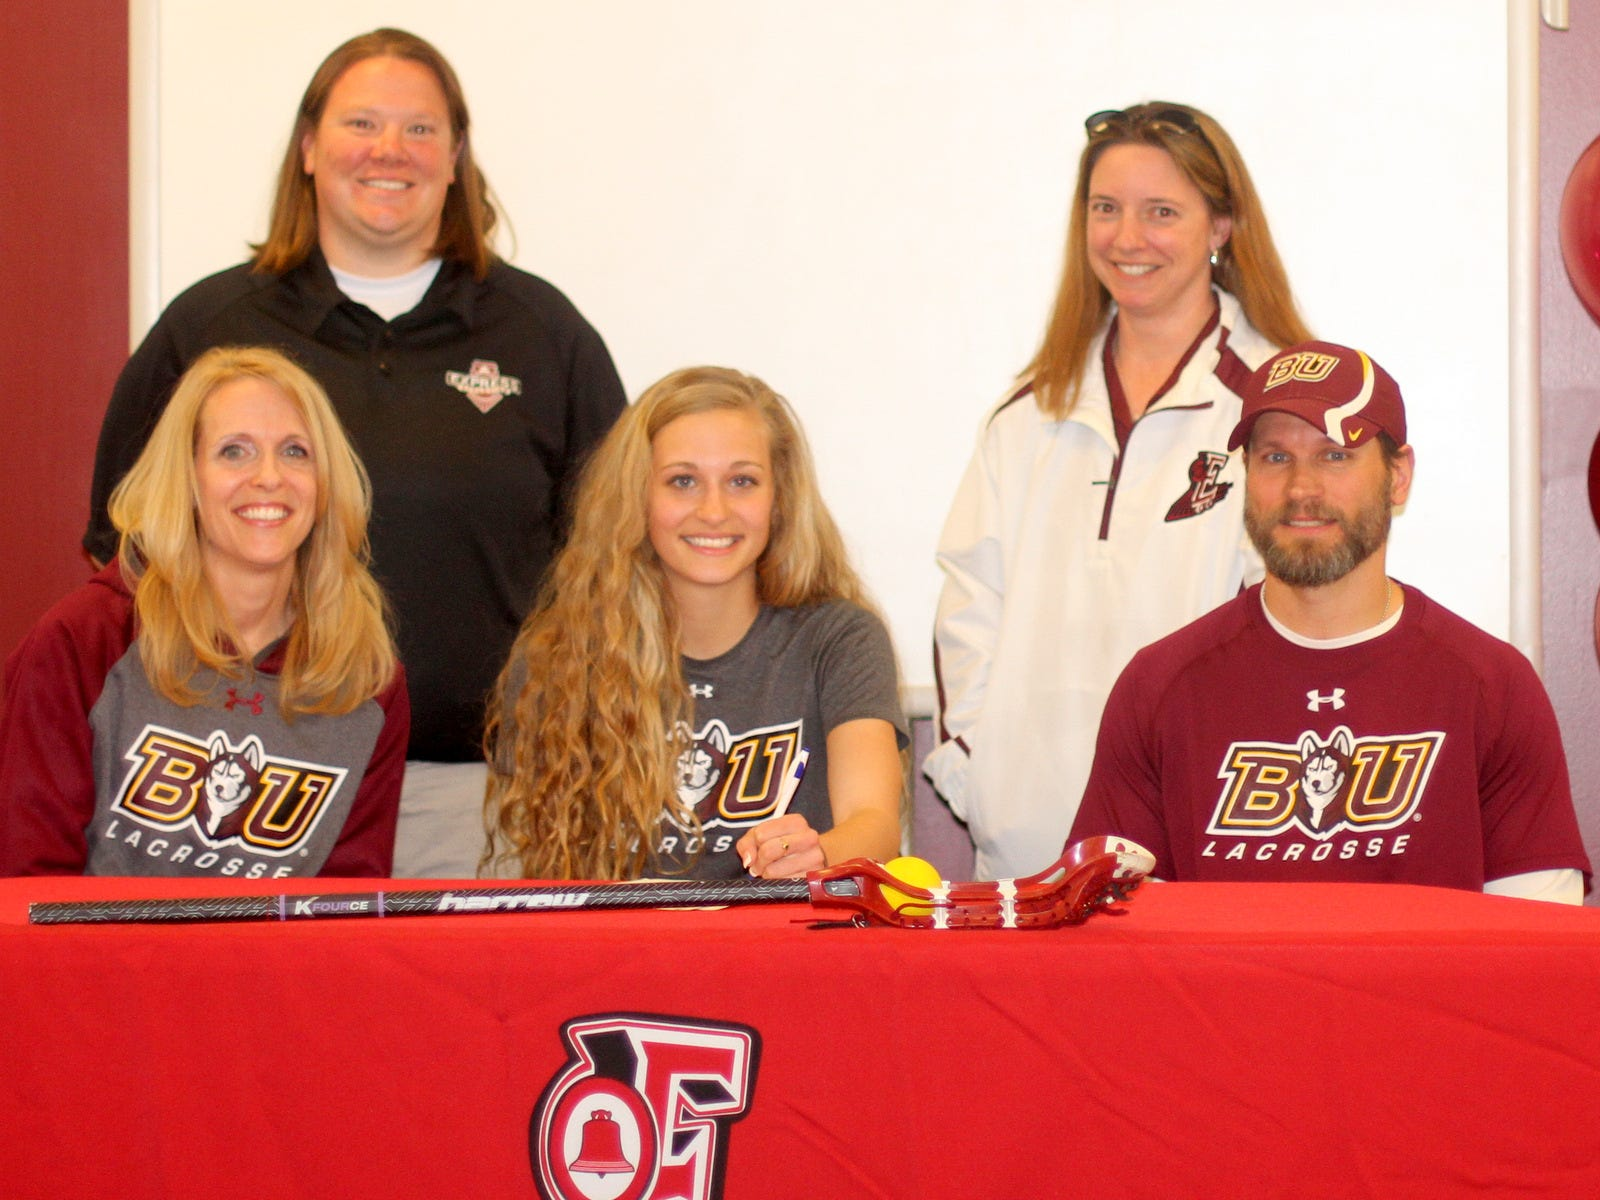 Elmira High School senior Jordynn Kurcoba signs a ceremonial letter of intent to play lacrosse at Bloomsburg University. Seated next to her are her parents, Bryan and Christine Kurcoba. In the background, from left, are current Elmira girls lacrosse head coach Tammy Woodard and former Express head coach Jana Reidy.